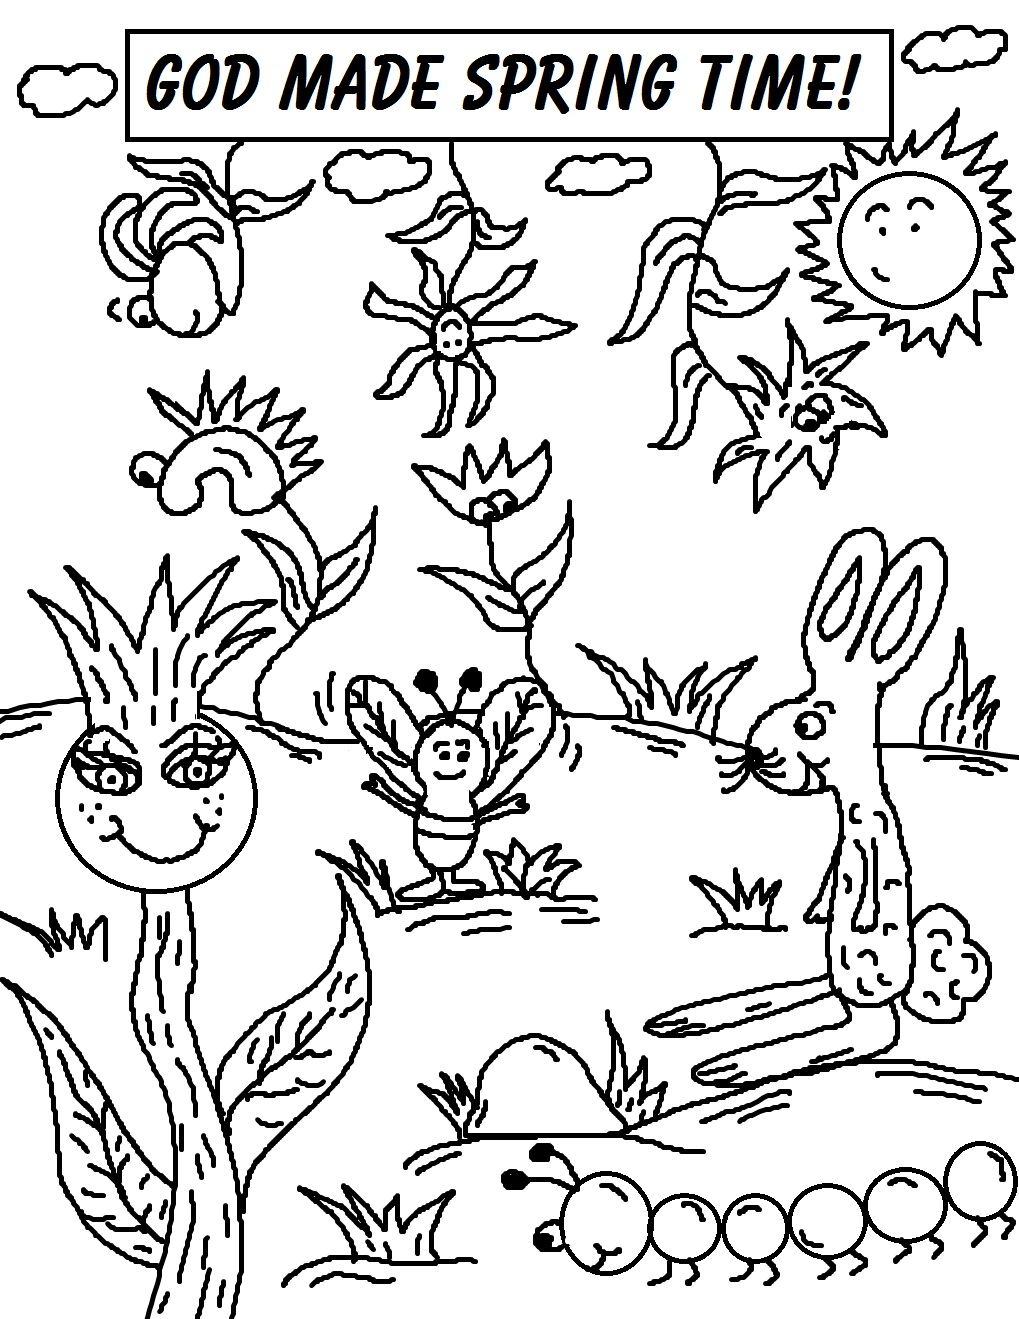 Spring coloring pages free printable - Spring Coloring Pages God Made Spring Time